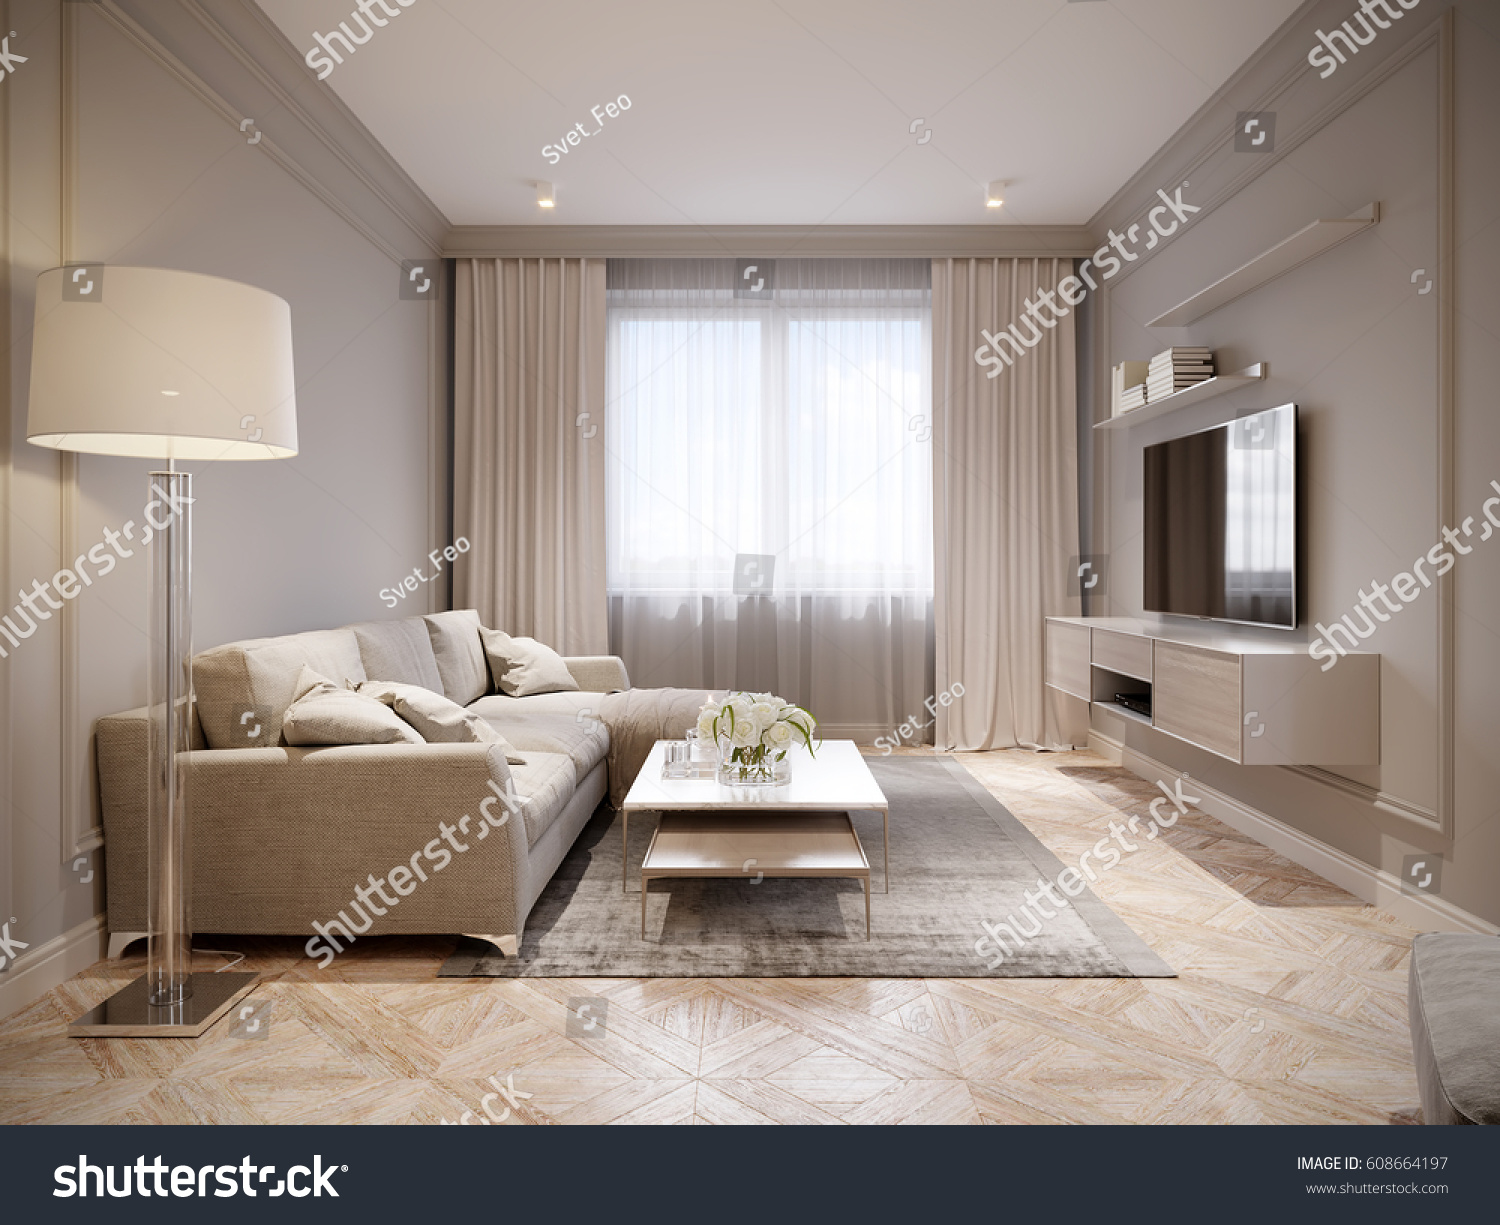 Modern Beige Gray Living Room Interior Stock Illustration 608664197